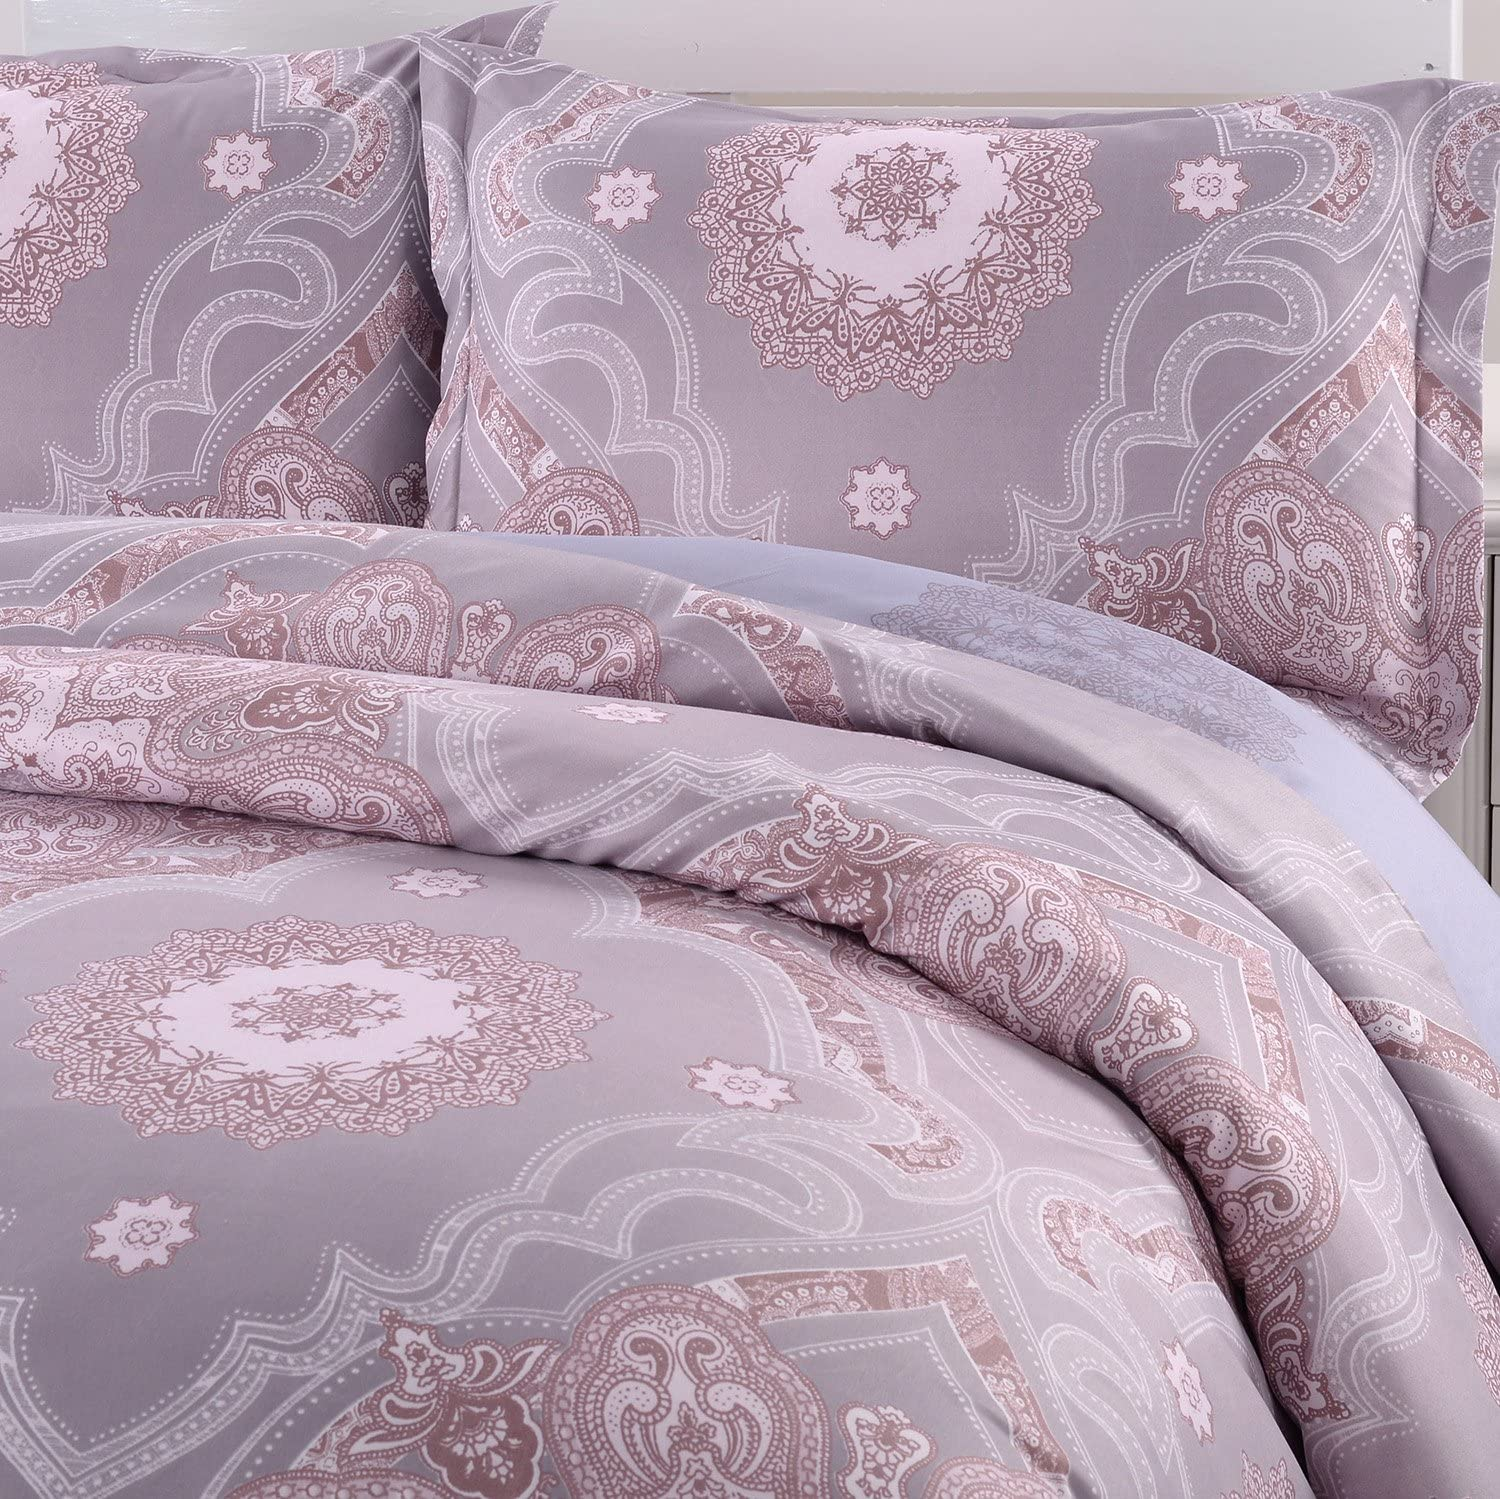 King Simple/&Opulence Microfiber Light Purple Floral Queen Quilt King Duvet Cover Set Including 1 Duvet Cover and 2 Pillowcases